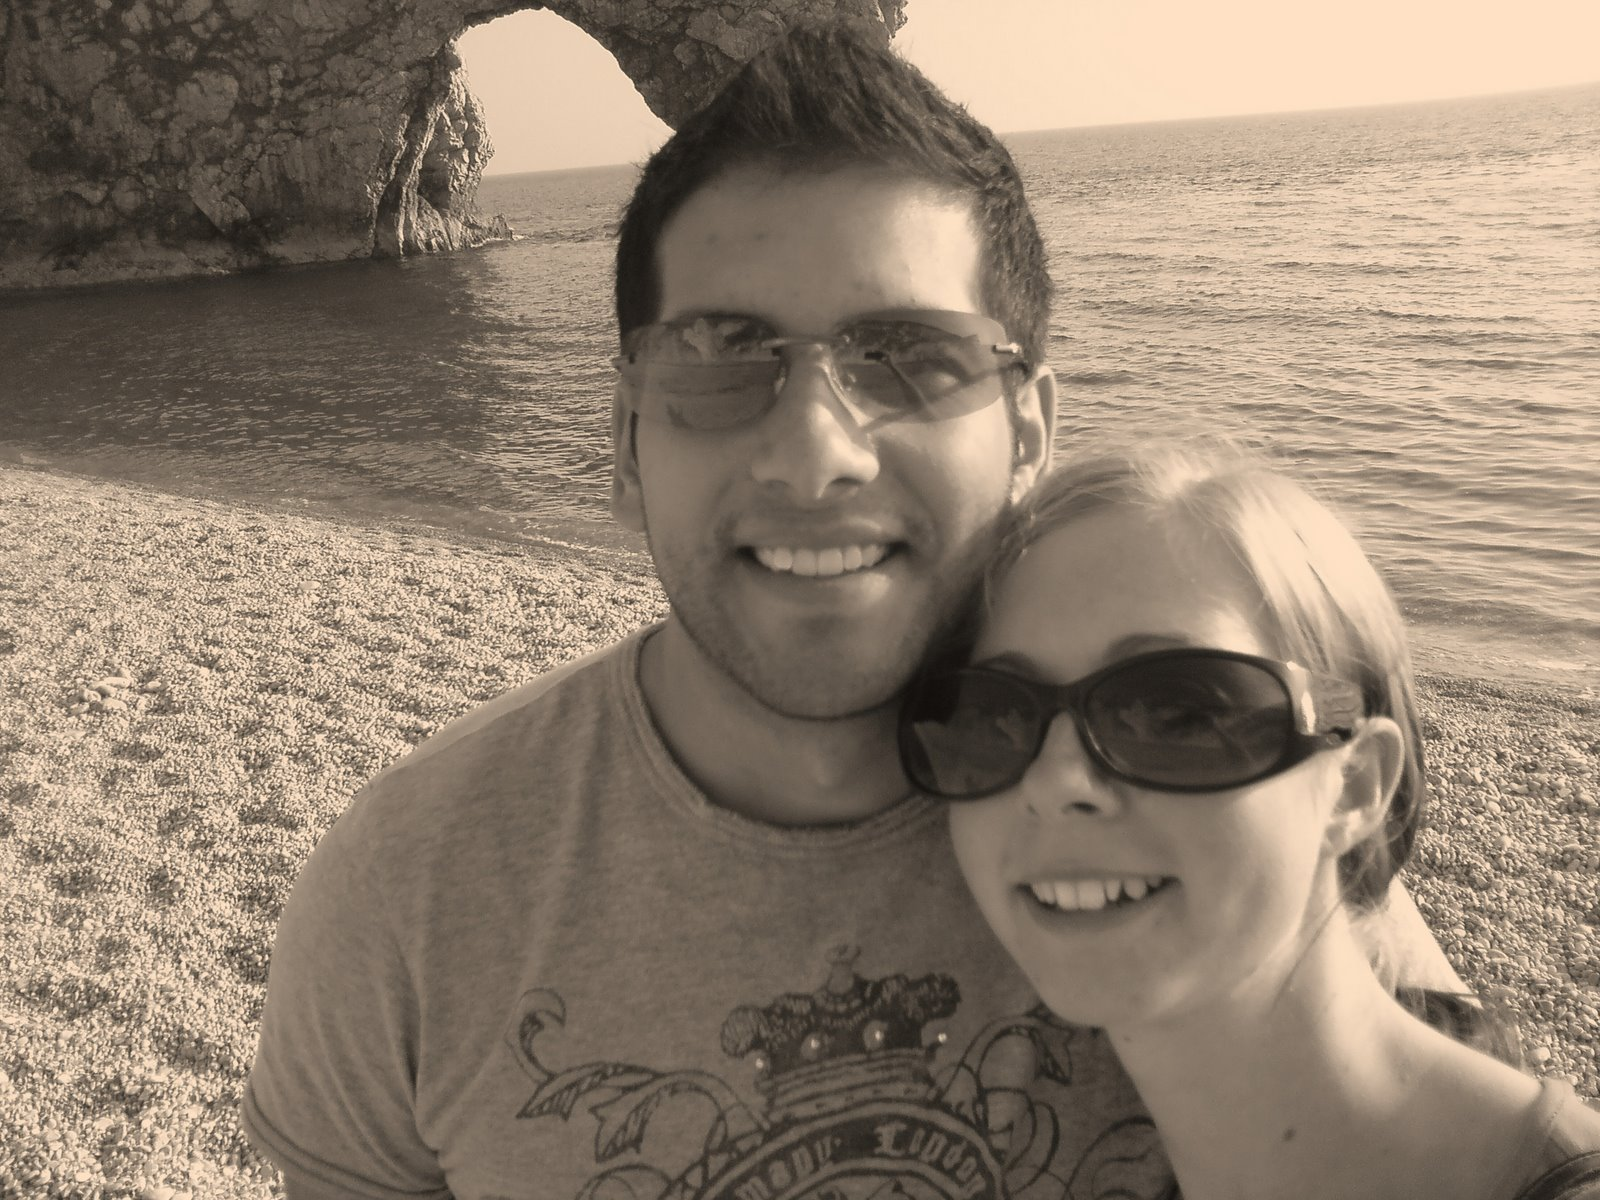 Me and my new guy on the beach at Durdle Door!